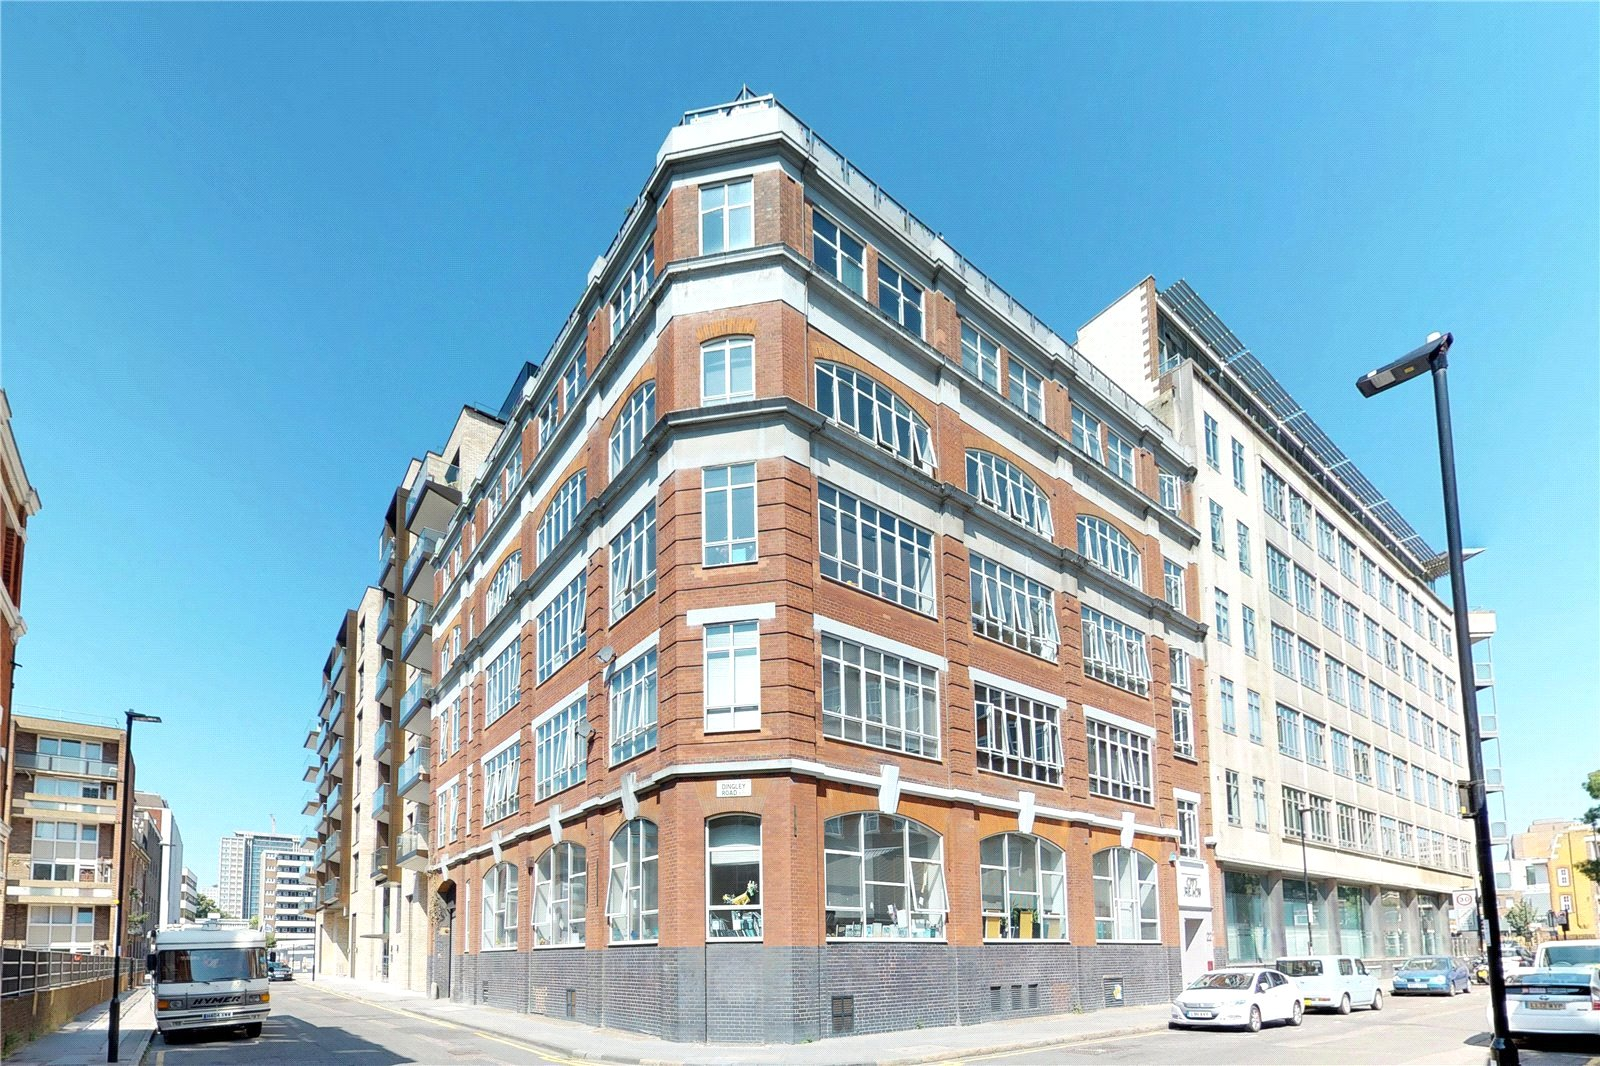 Stirling ackroyd estate agents contact our clerkenwell branch